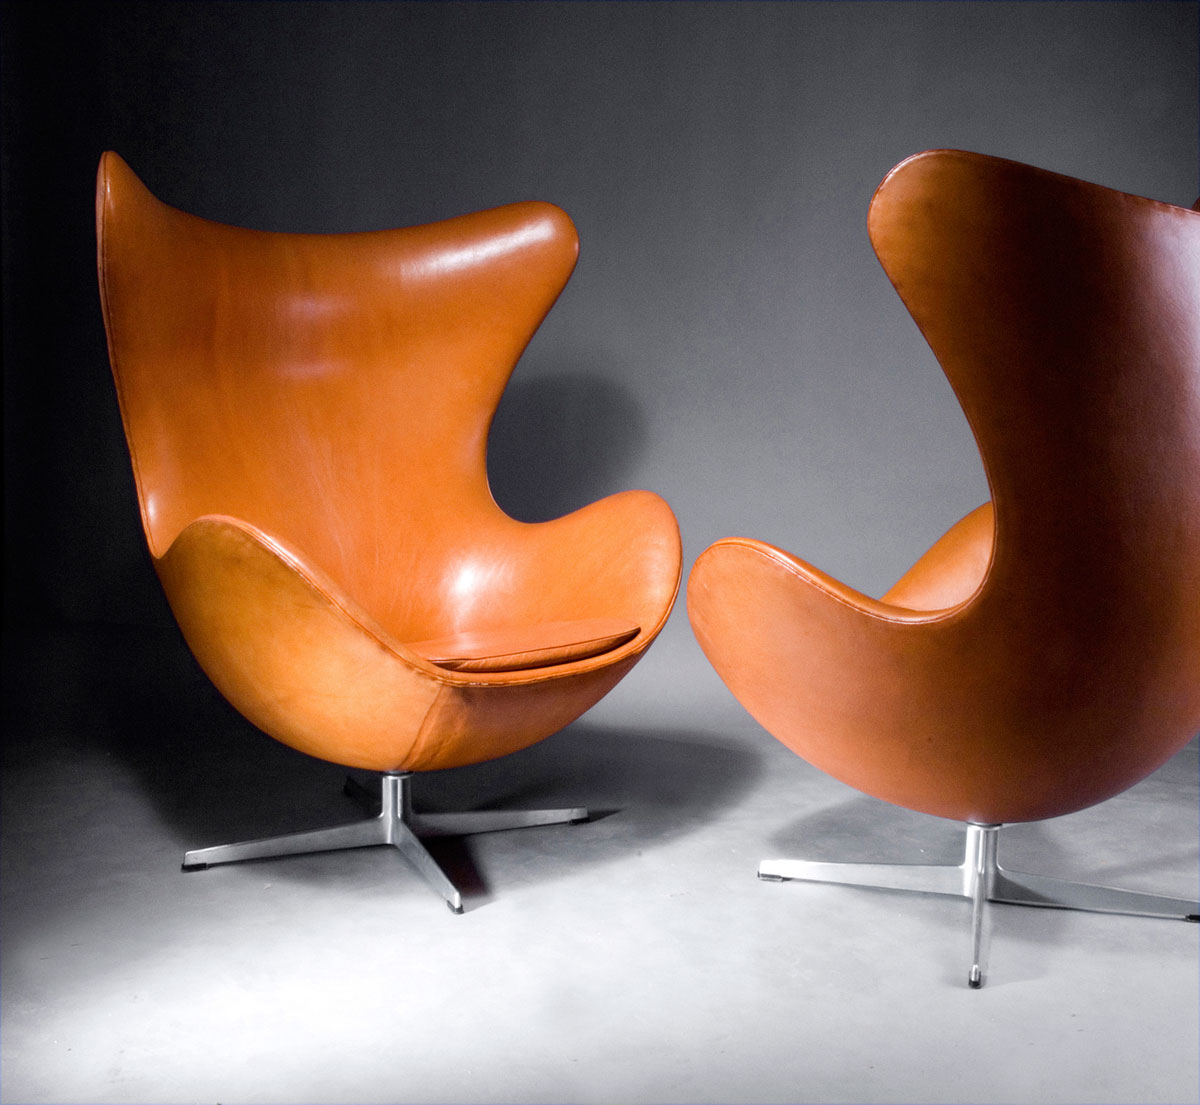 Arne jacobsen egg chair leather - Egg Chair Walnut Leater Fritz Hansen Arne Jacobsen Design